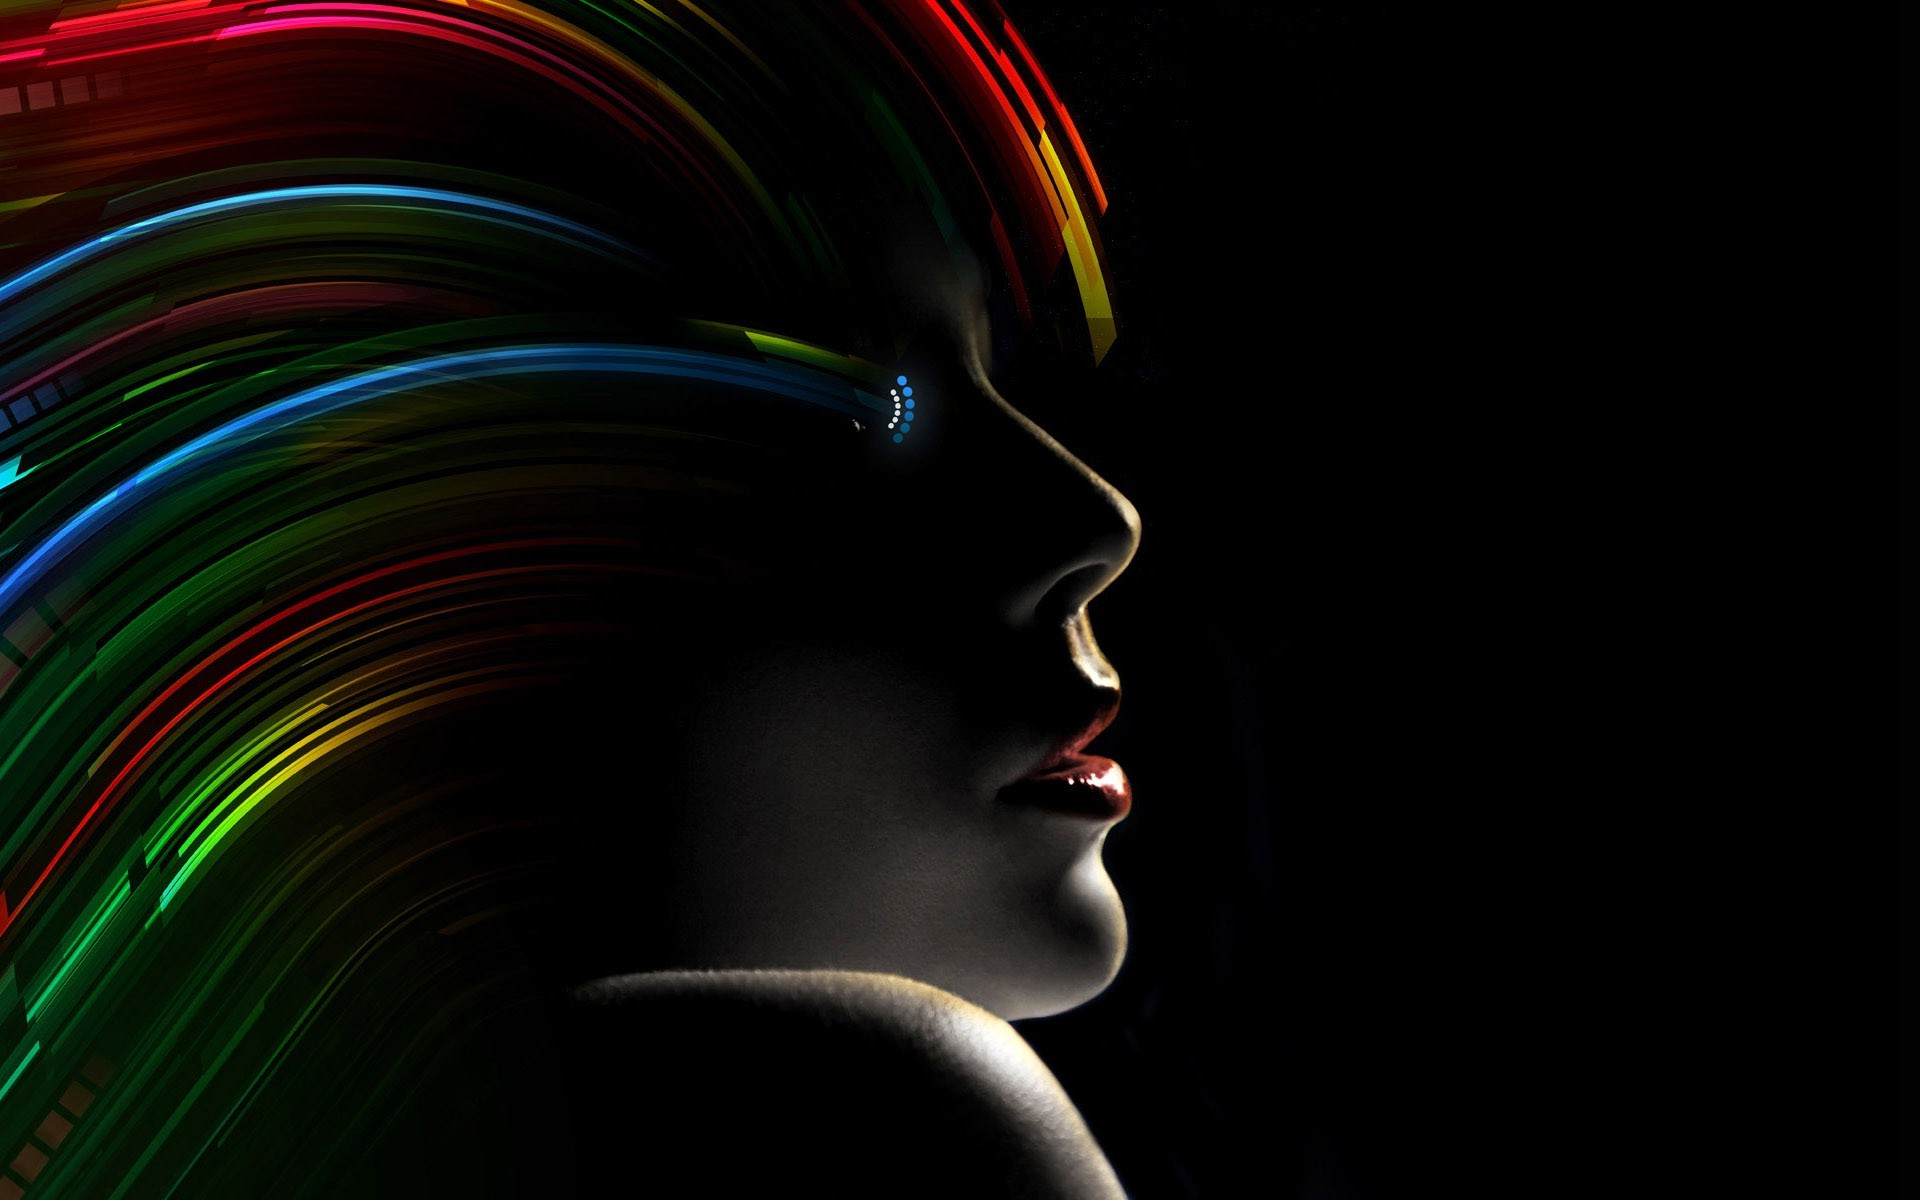 wonder woman, abstract, dark, colorful, black background, women